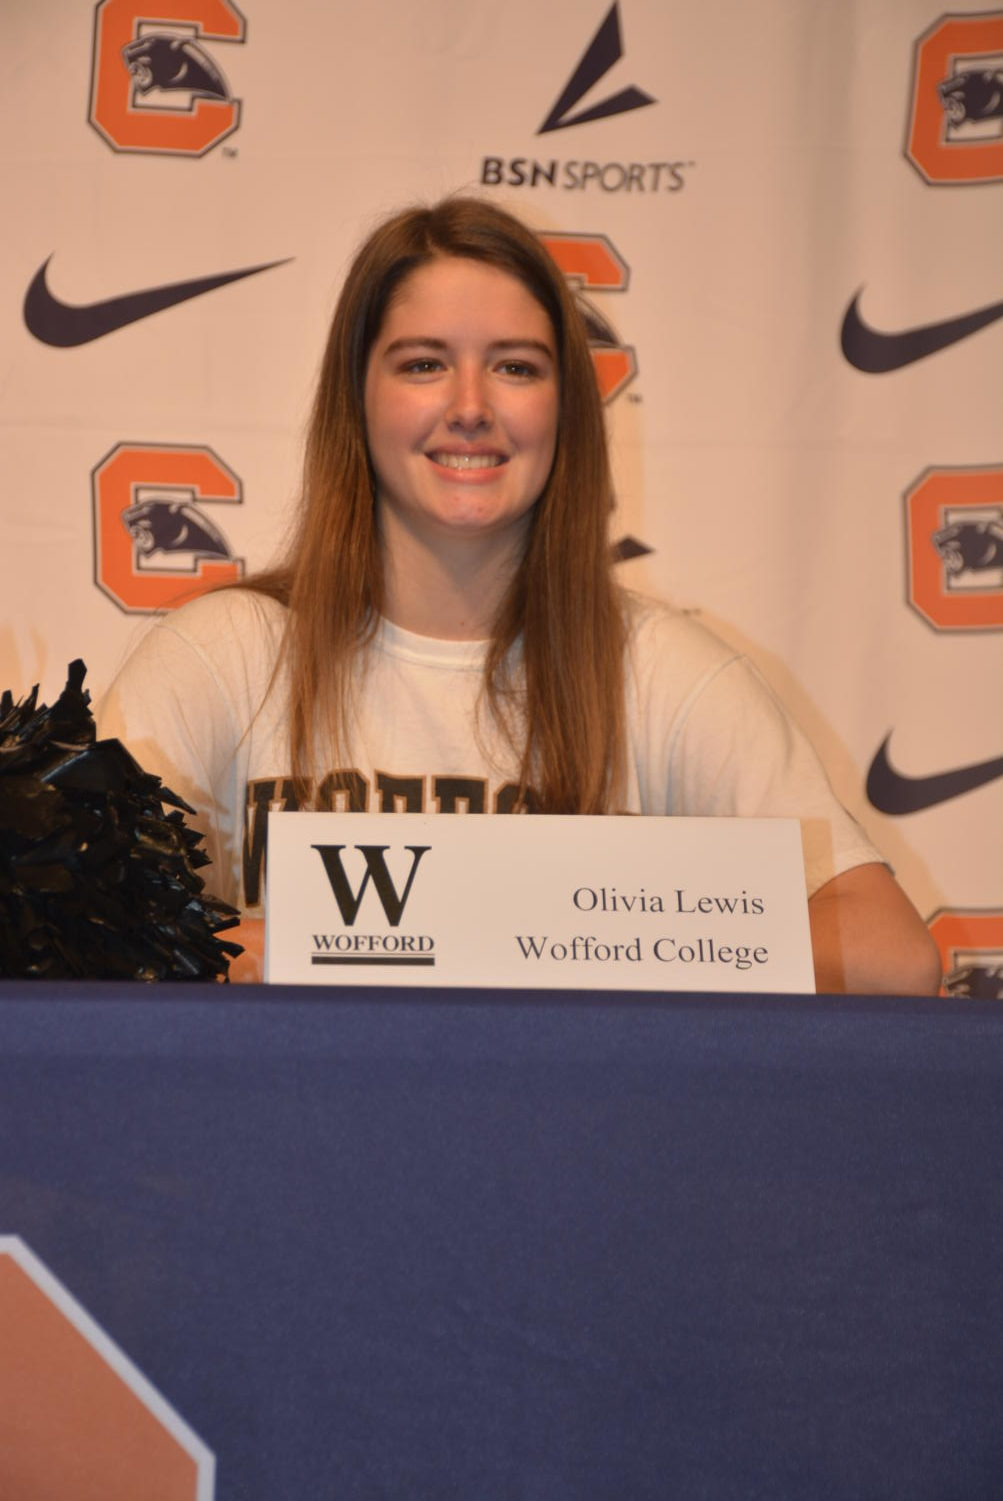 Olivia+Lewis+signing+to+cheer+at+Wofford+College